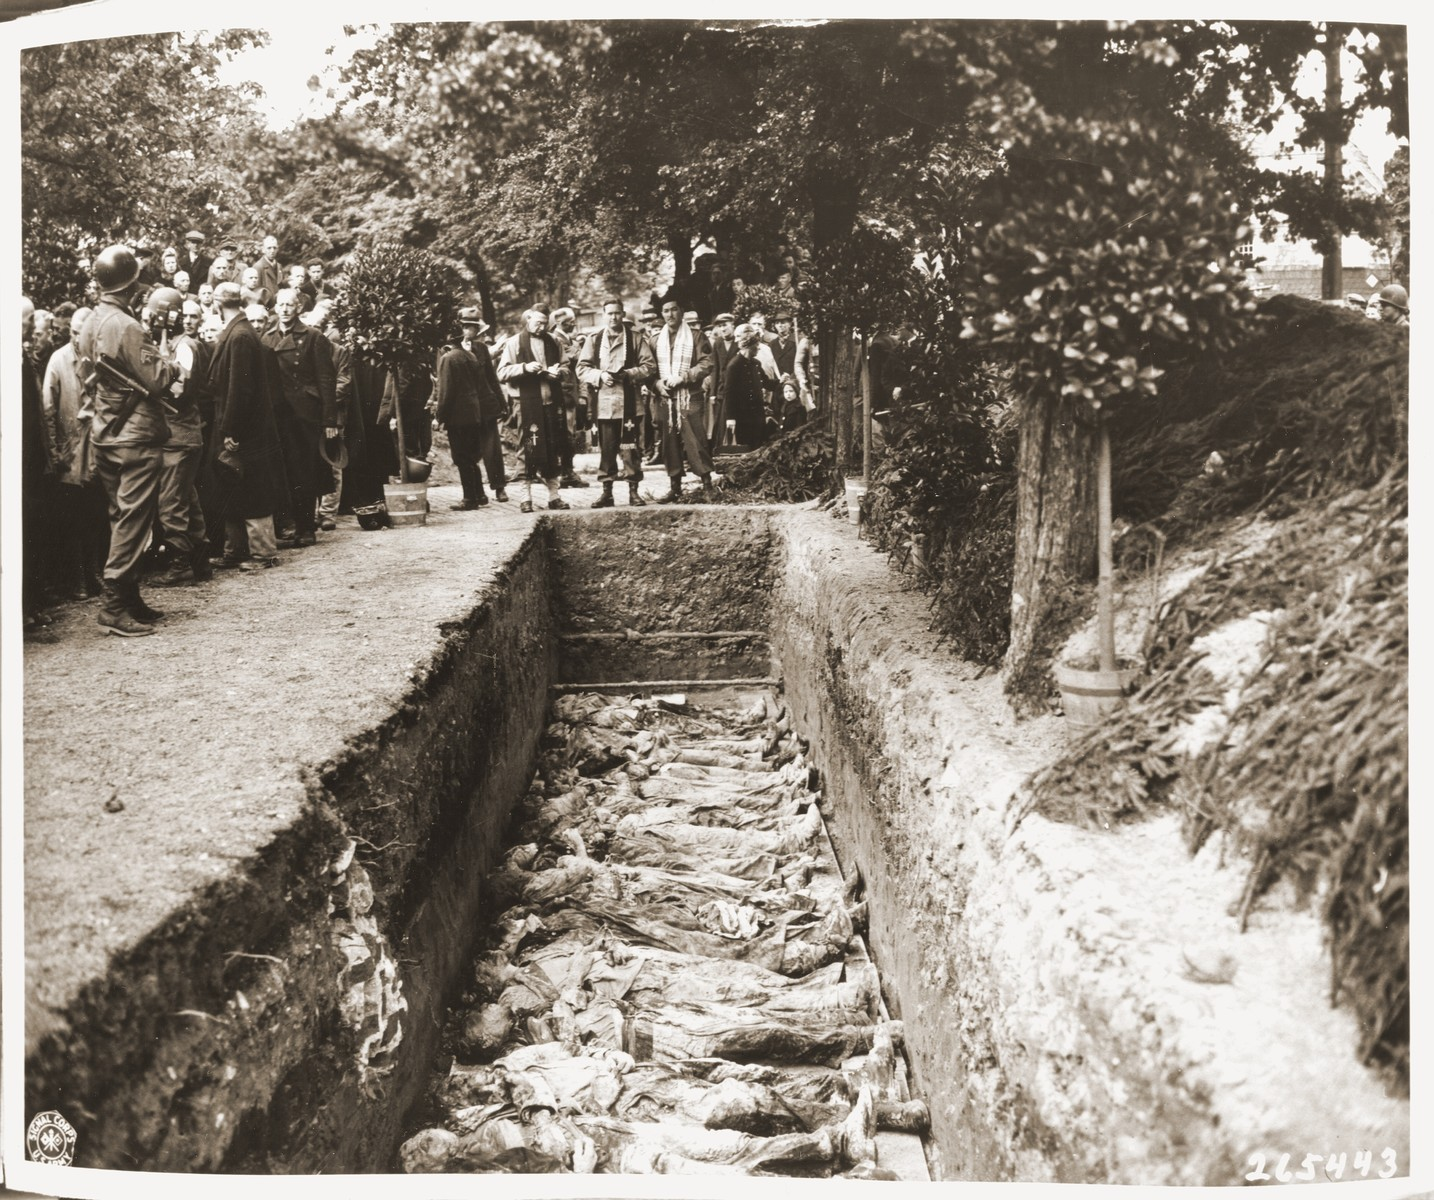 Protestant, Catholic and Jewish chaplains conduct funeral services for the reburial of 71 political prisoners, exhumed from a mass grave near Solingen-Ohligs, in front of the city hall.    The victims, most of whom were taken from Luettringhausen prison, were shot and buried by the Gestapo following orders to eliminate all Reich enemies just before the end of the war.